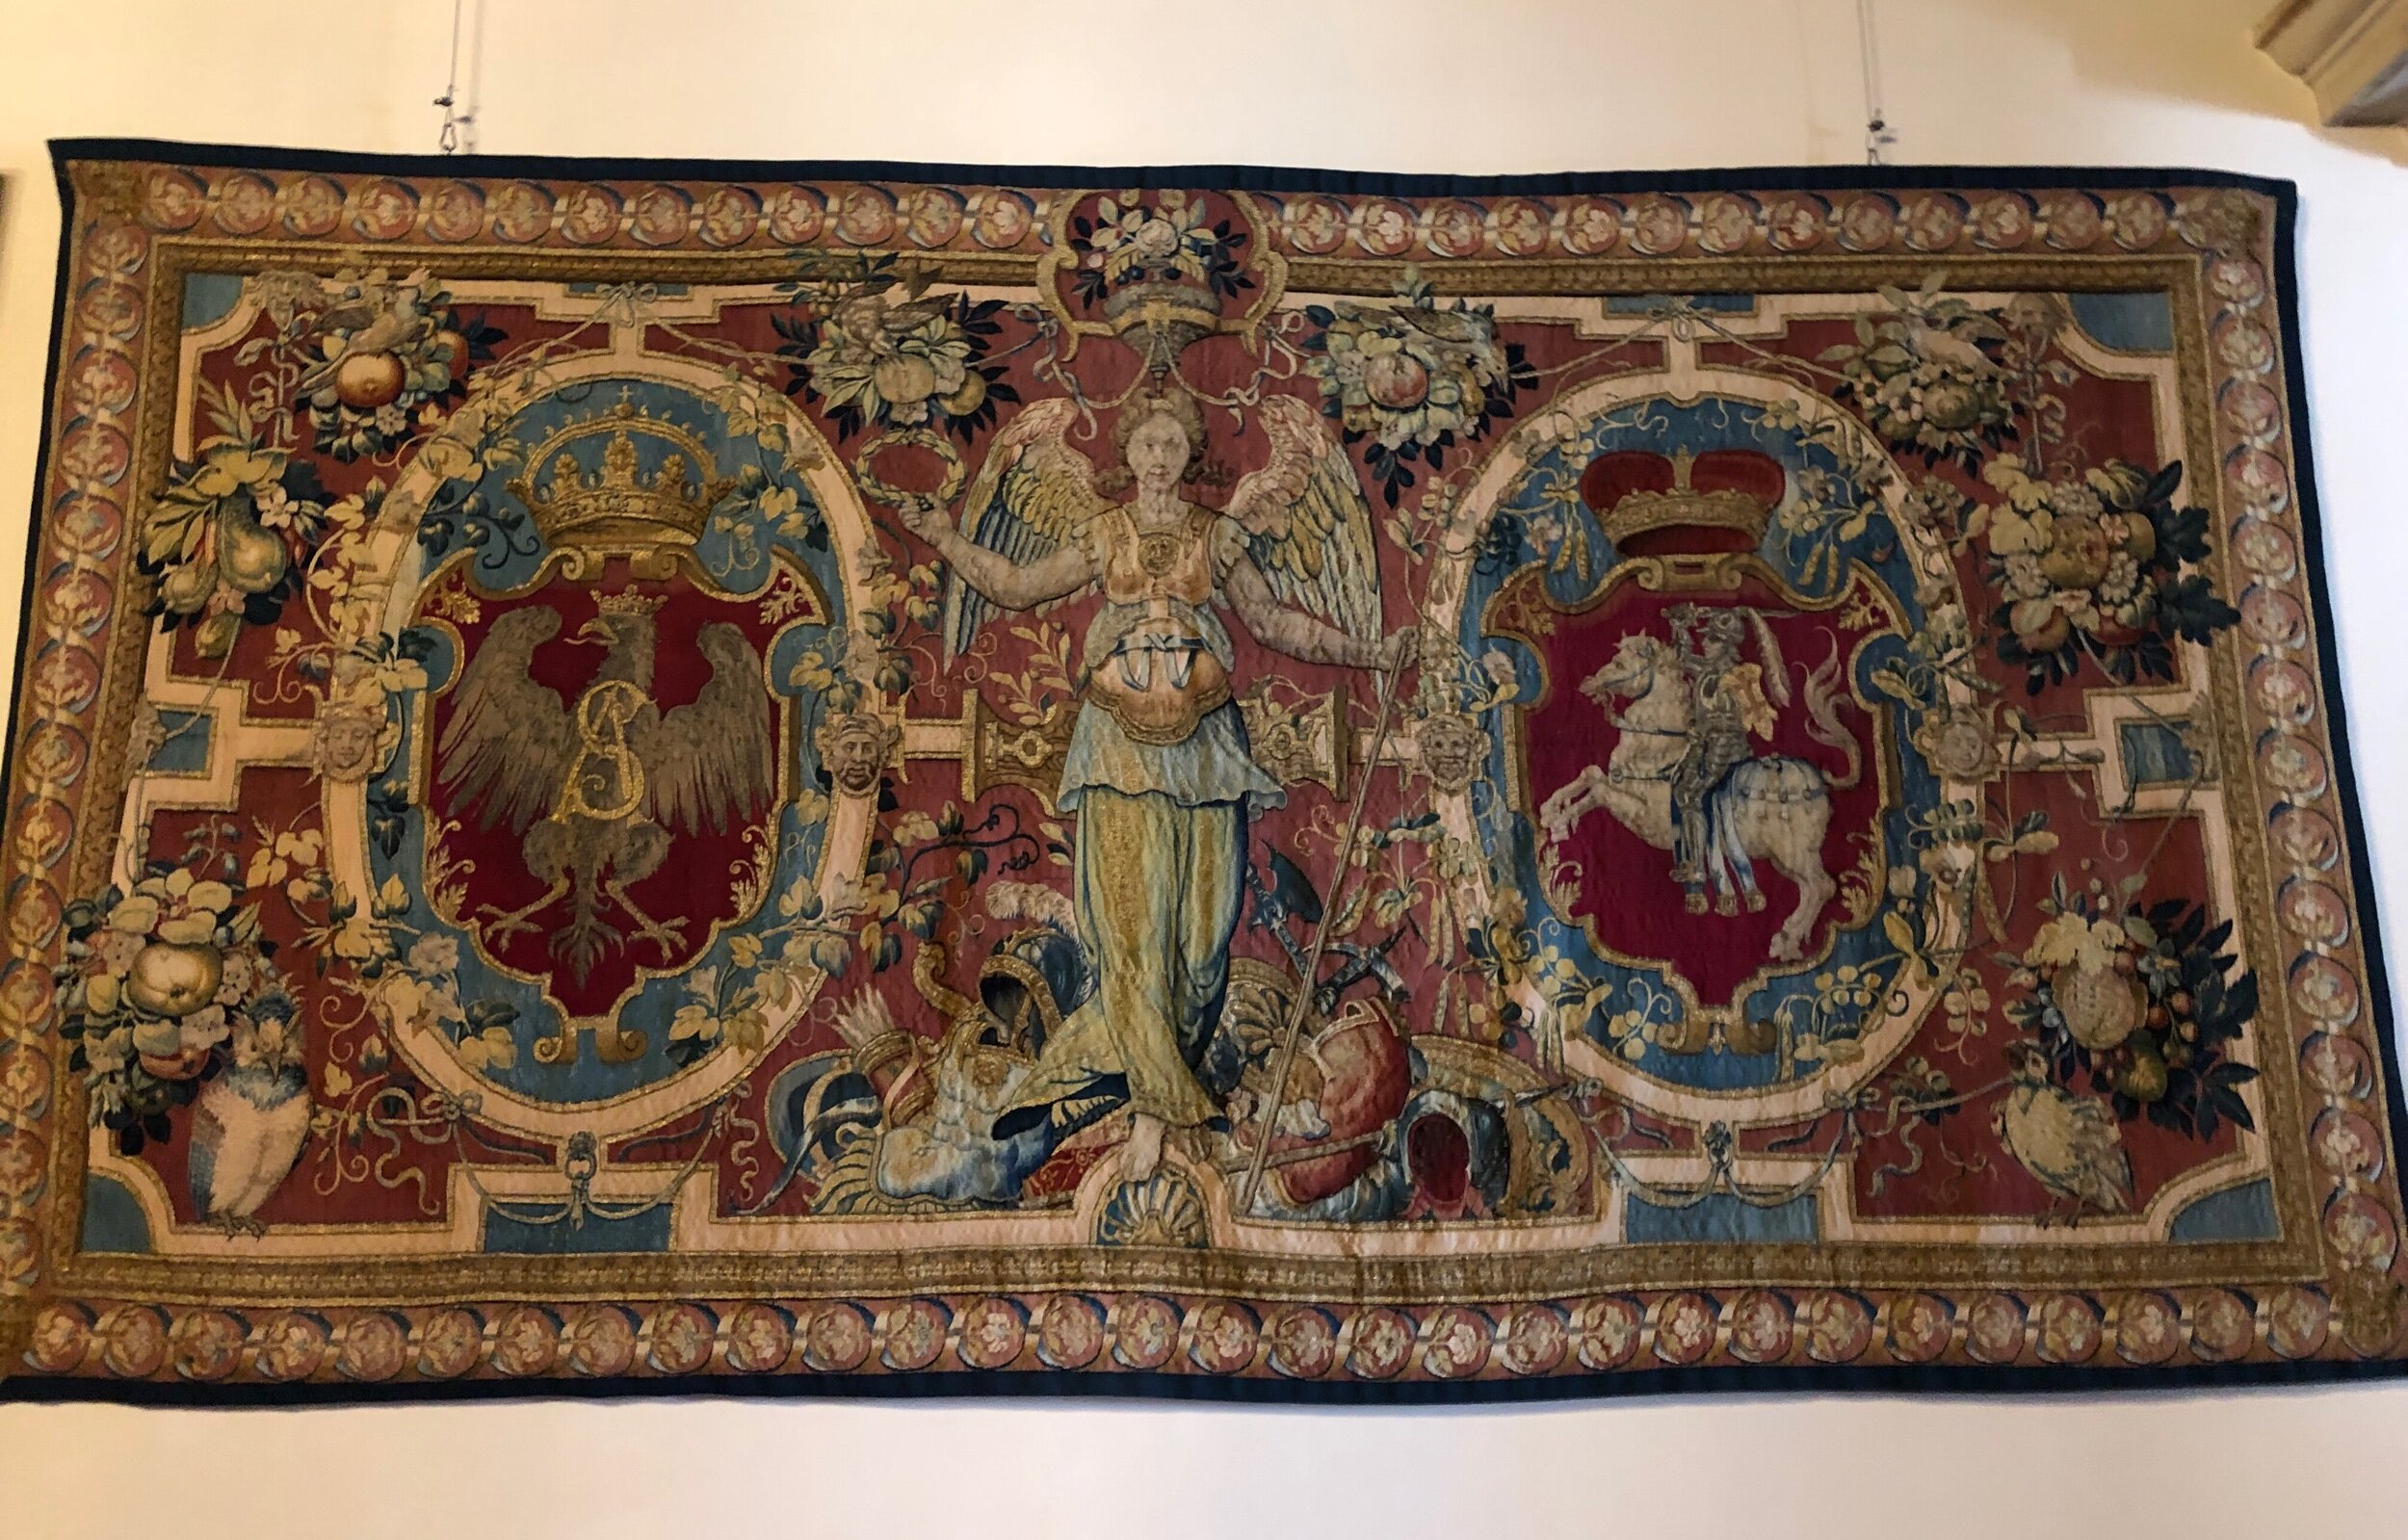 A Flemish-made tapestry depicting the seals of Lithuania and Poland hanging in Wawel Castle, Kraków.